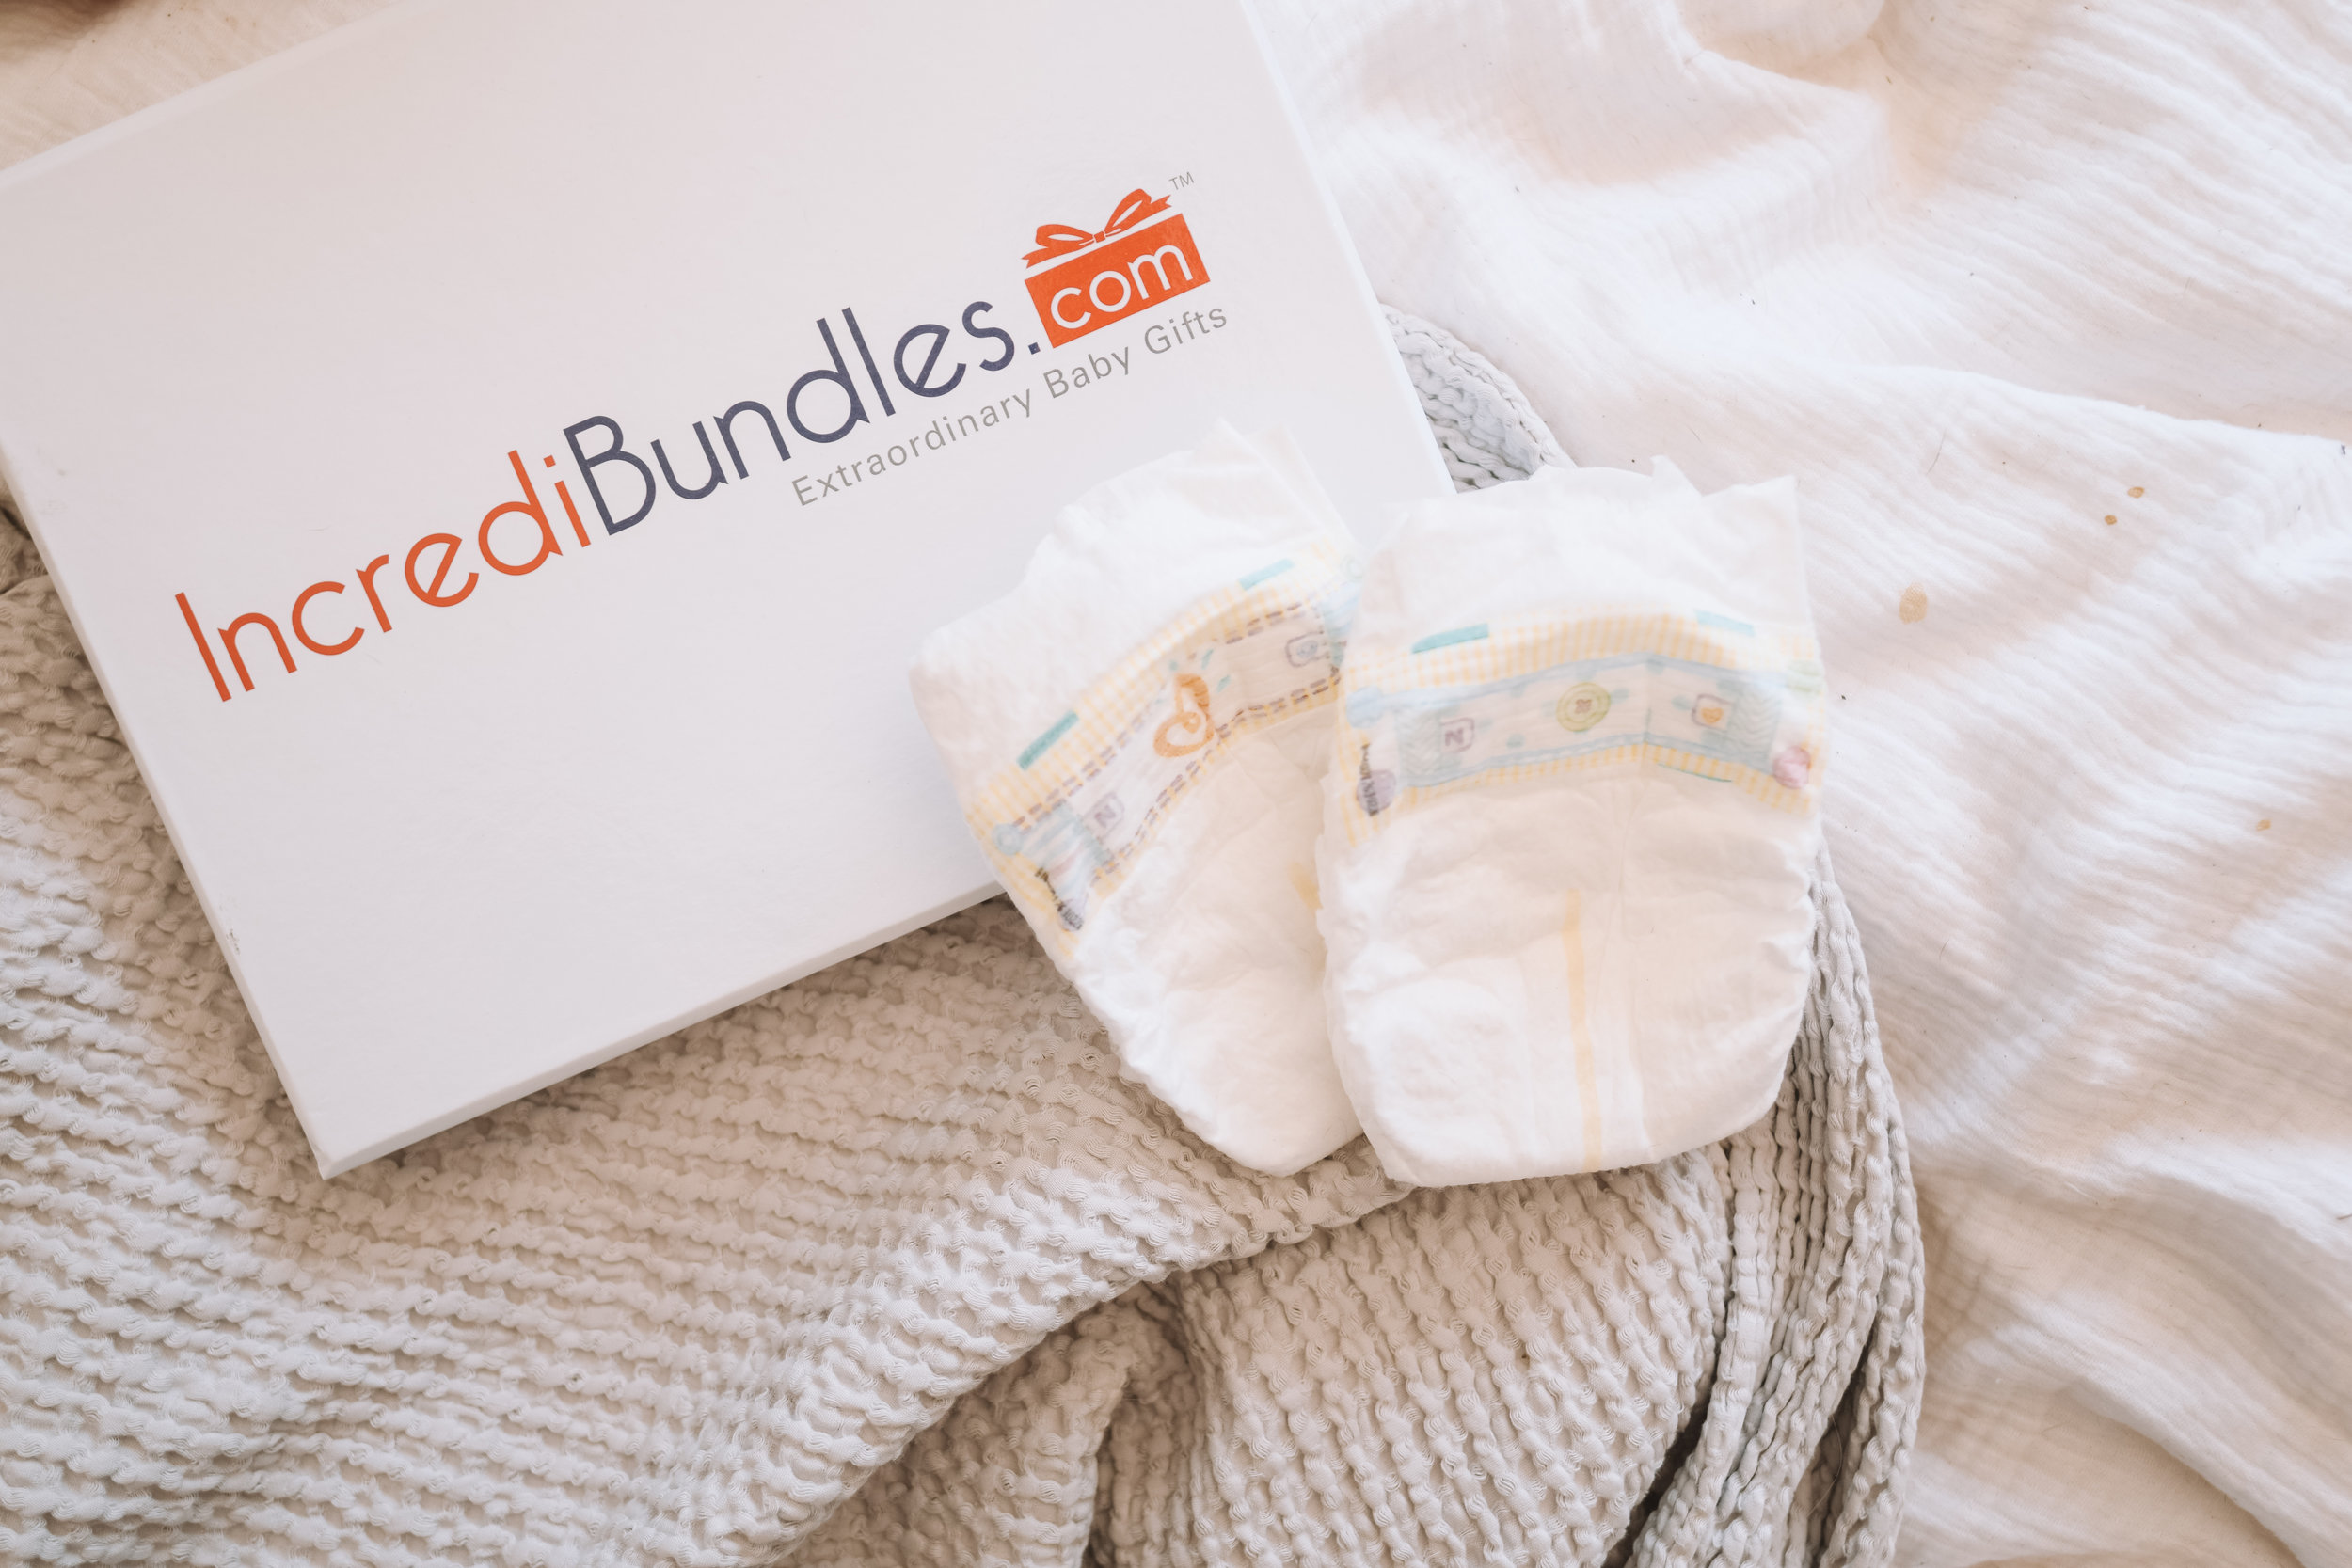 Diaper Subscriptions - Save Money on Diapers IncrediBundles -- The Overwhelmed Mommy Blogger